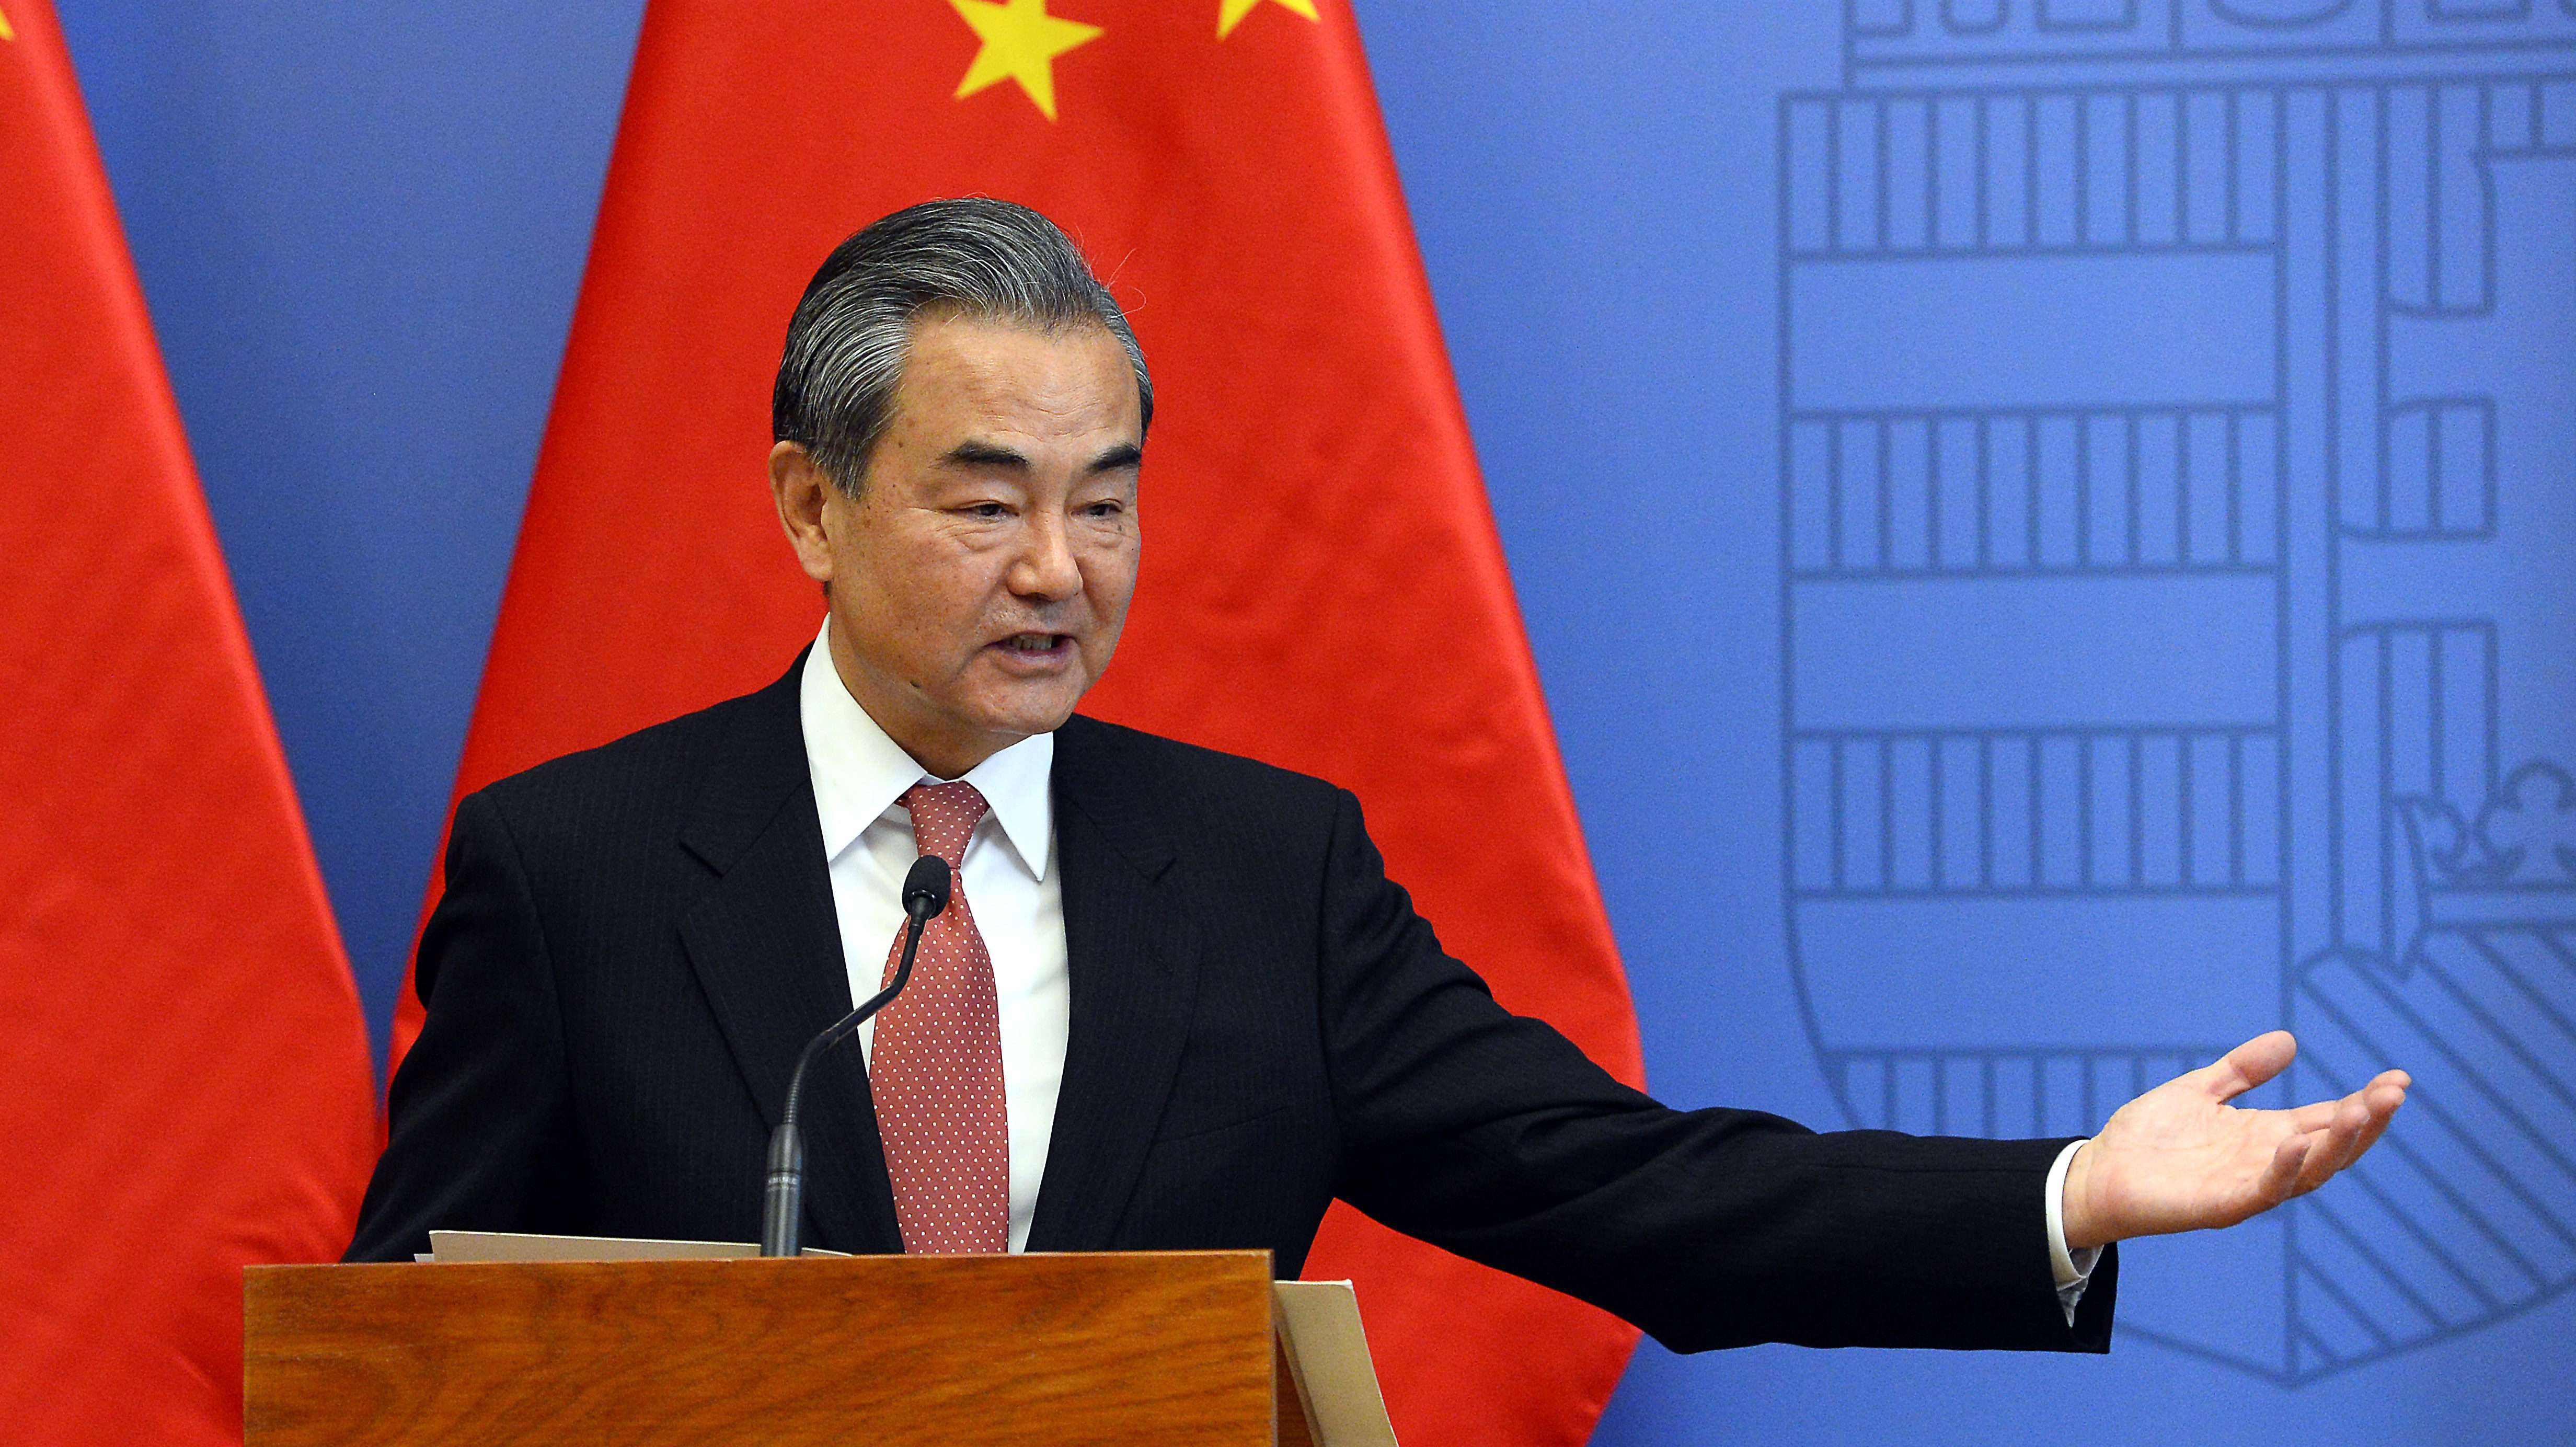 Chinese foreign minister Wang Yi in Budapest – Chinese-Hungarian Belt and Road